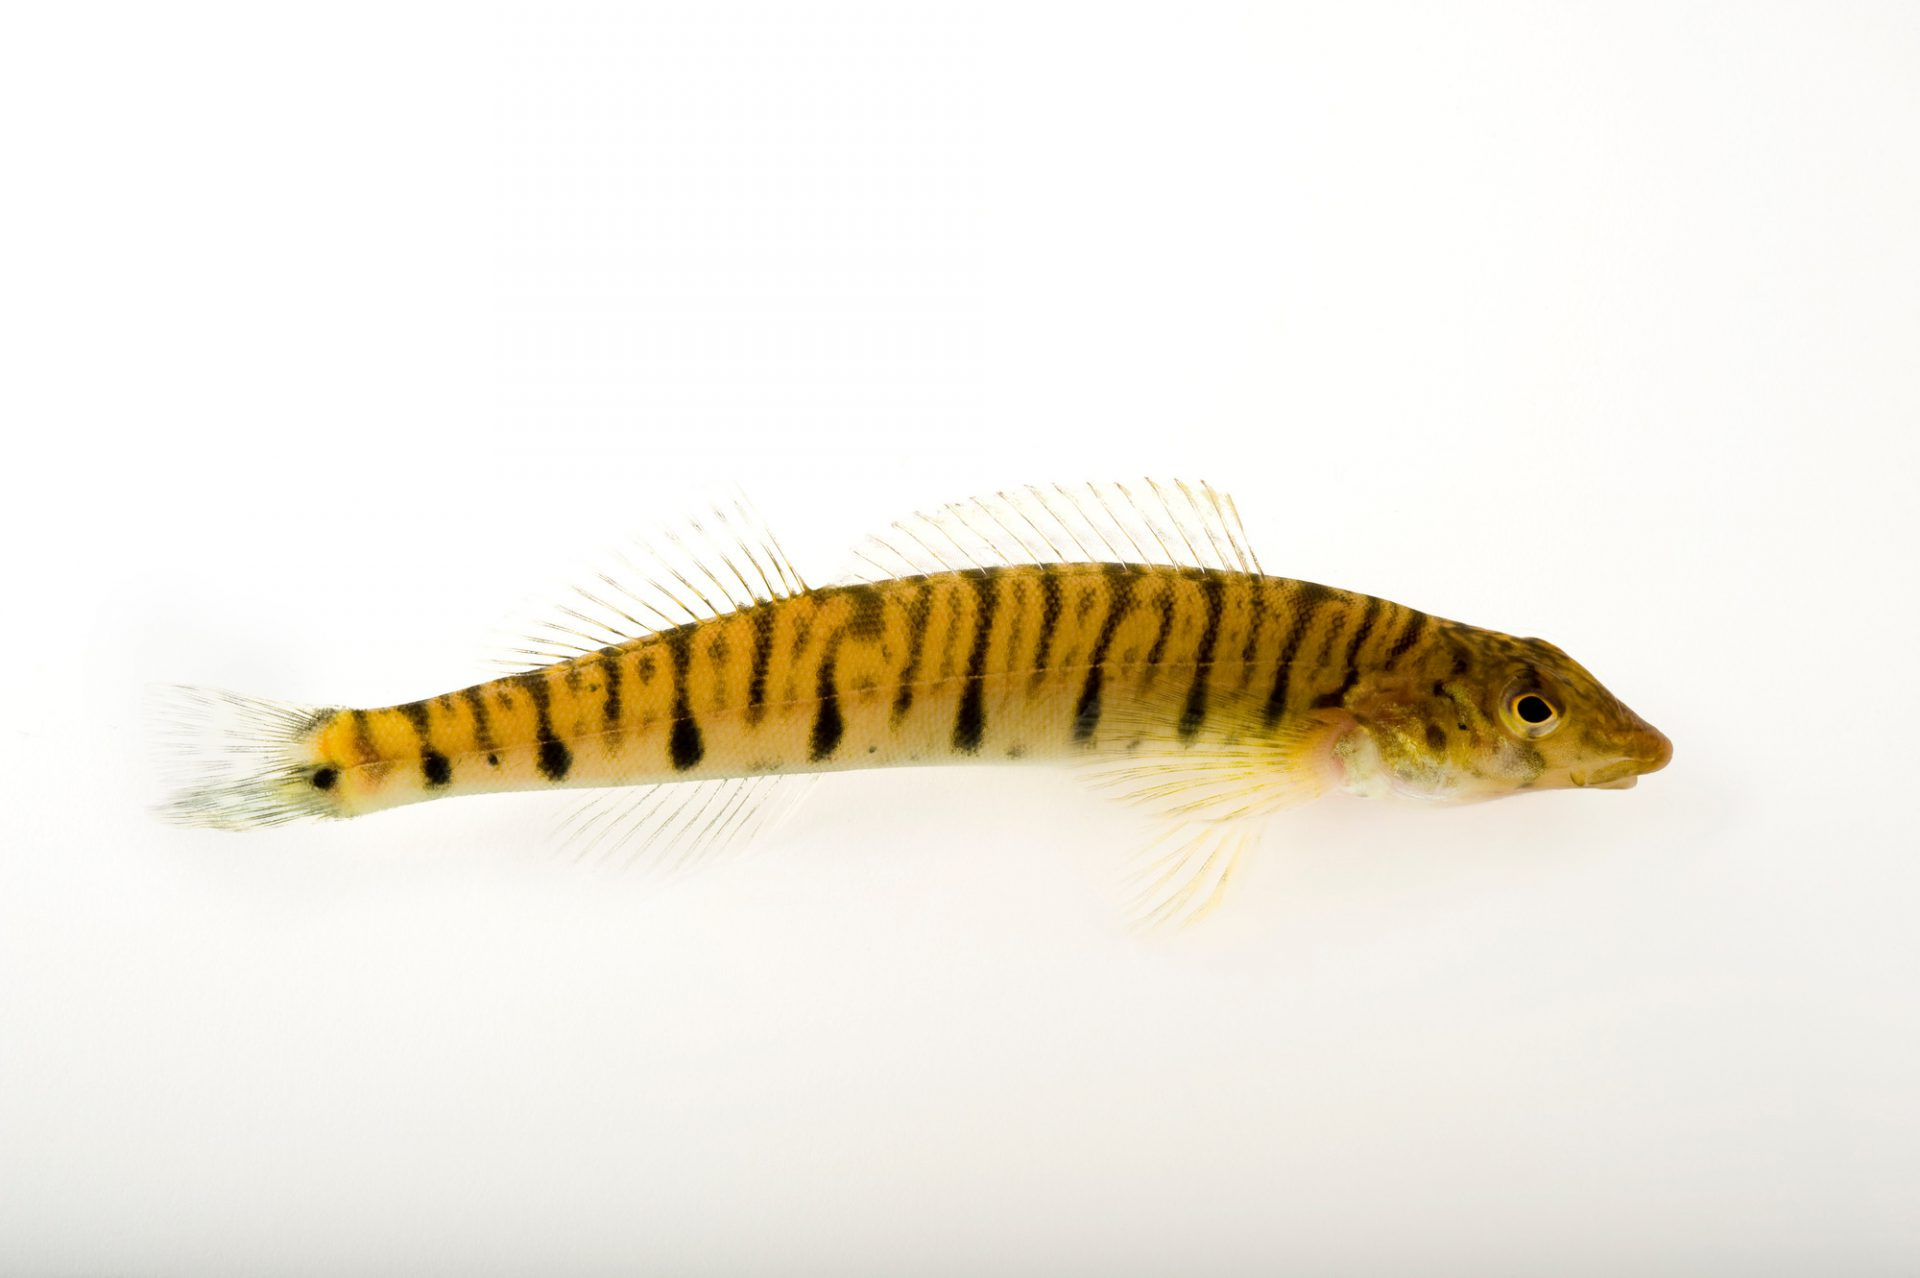 A Conasauga or reticulate logperch (Percina jerkins). This critically endangered (IUCN) and federally endangered fish is facing extinction; an estimated 200-400 remain, and are restricted to a 30-mile stretch of the Conasauga River in Tennessee and Georgia.